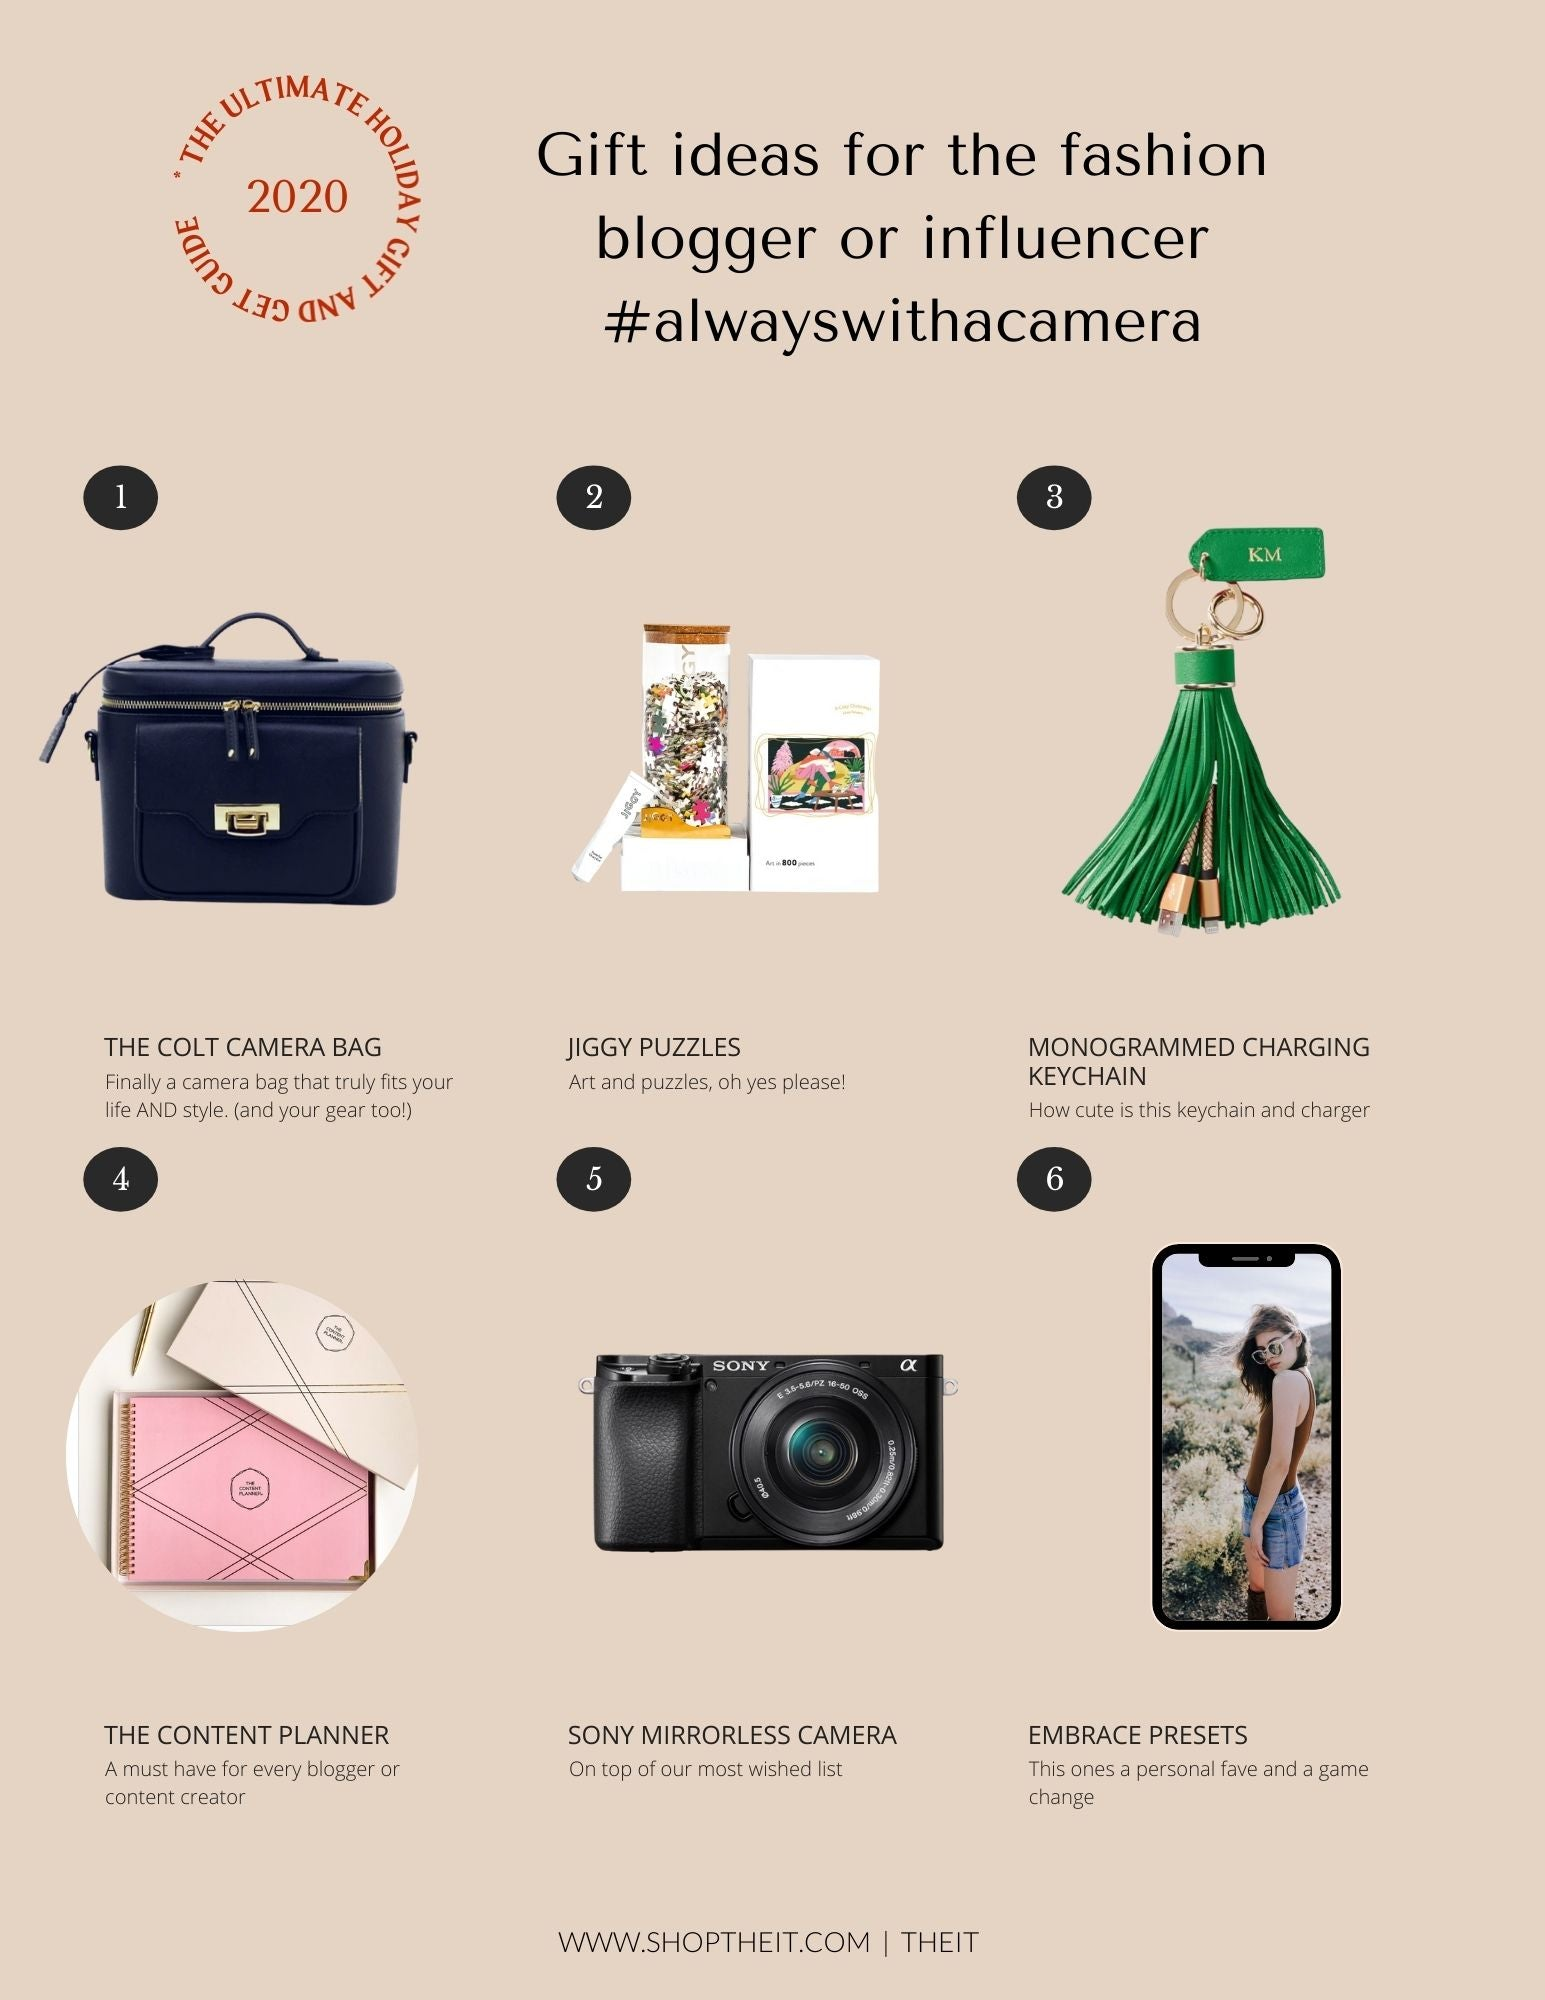 THEIT 2020 Holiday Gift Guide for Fashion Bloggers and Influencers who love Photography